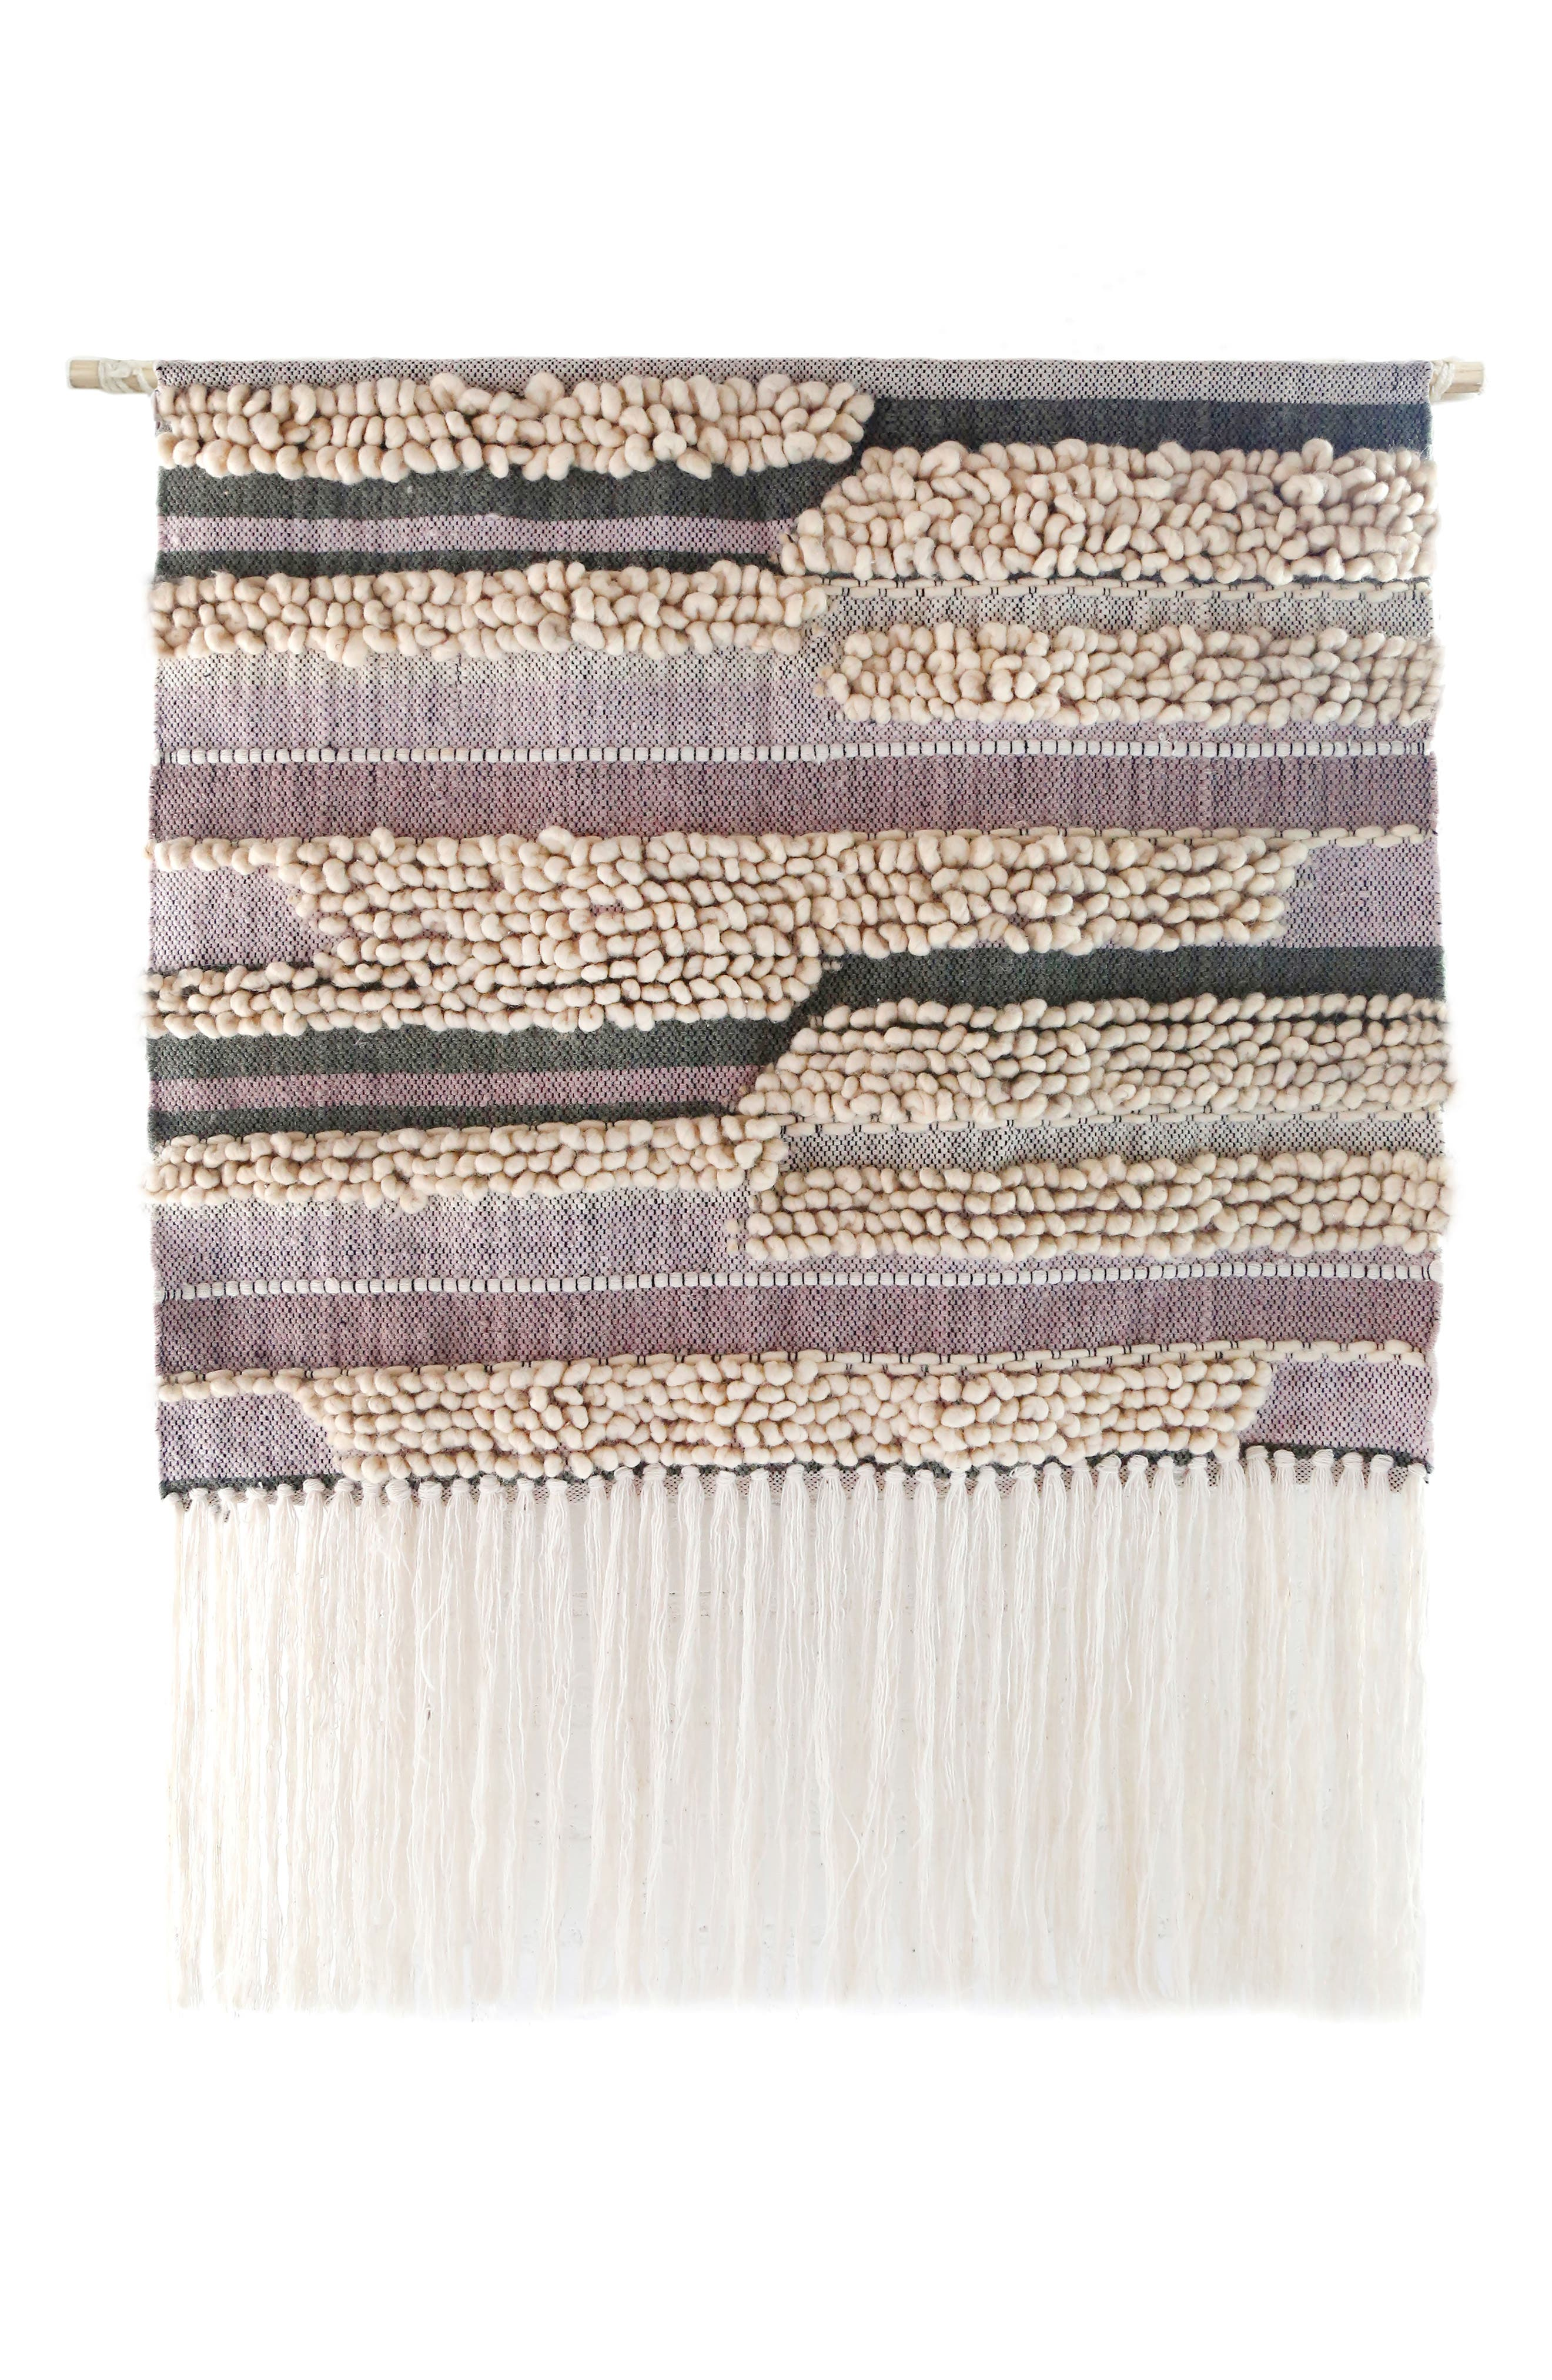 Safi Handwoven Wool Wall Hanging,                         Main,                         color, IVORY/ BERRY/ MOSS